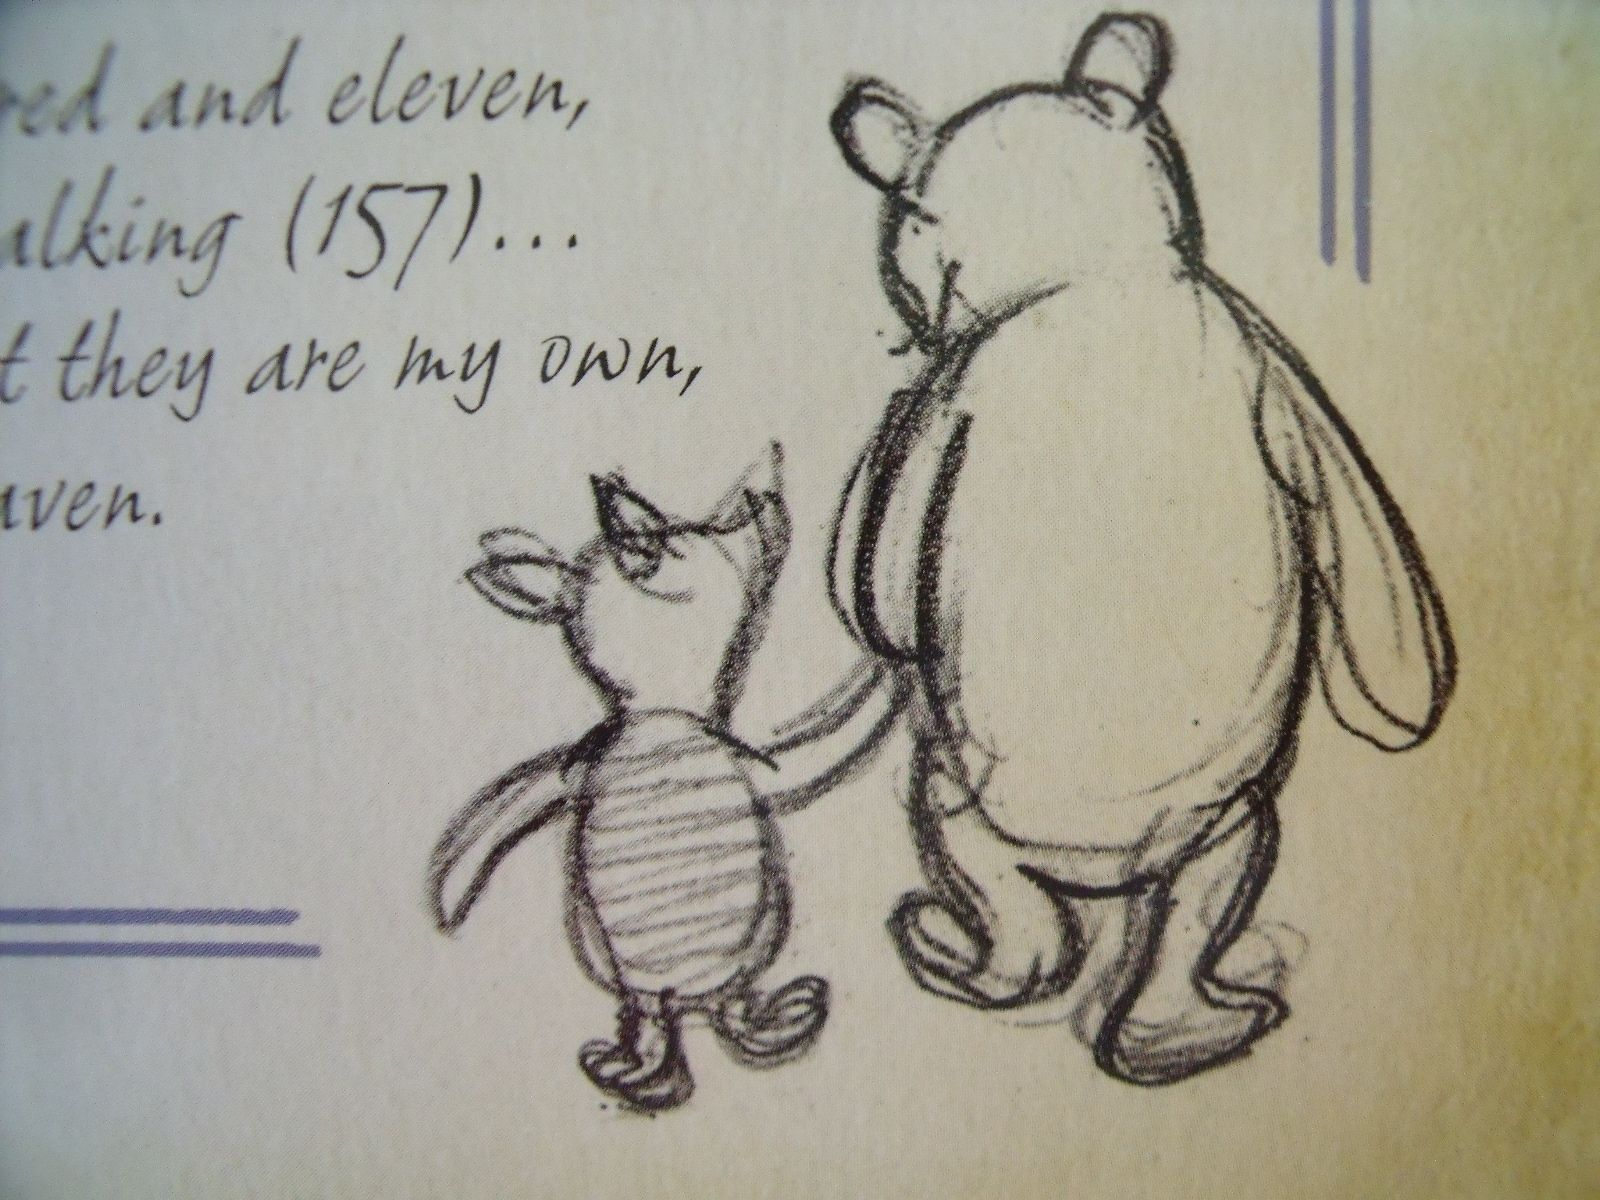 Winnie The Pooh And Piglet Quotes About Friendship Winnie The Pooh And Piglet Holding Hands Silhouette  Google